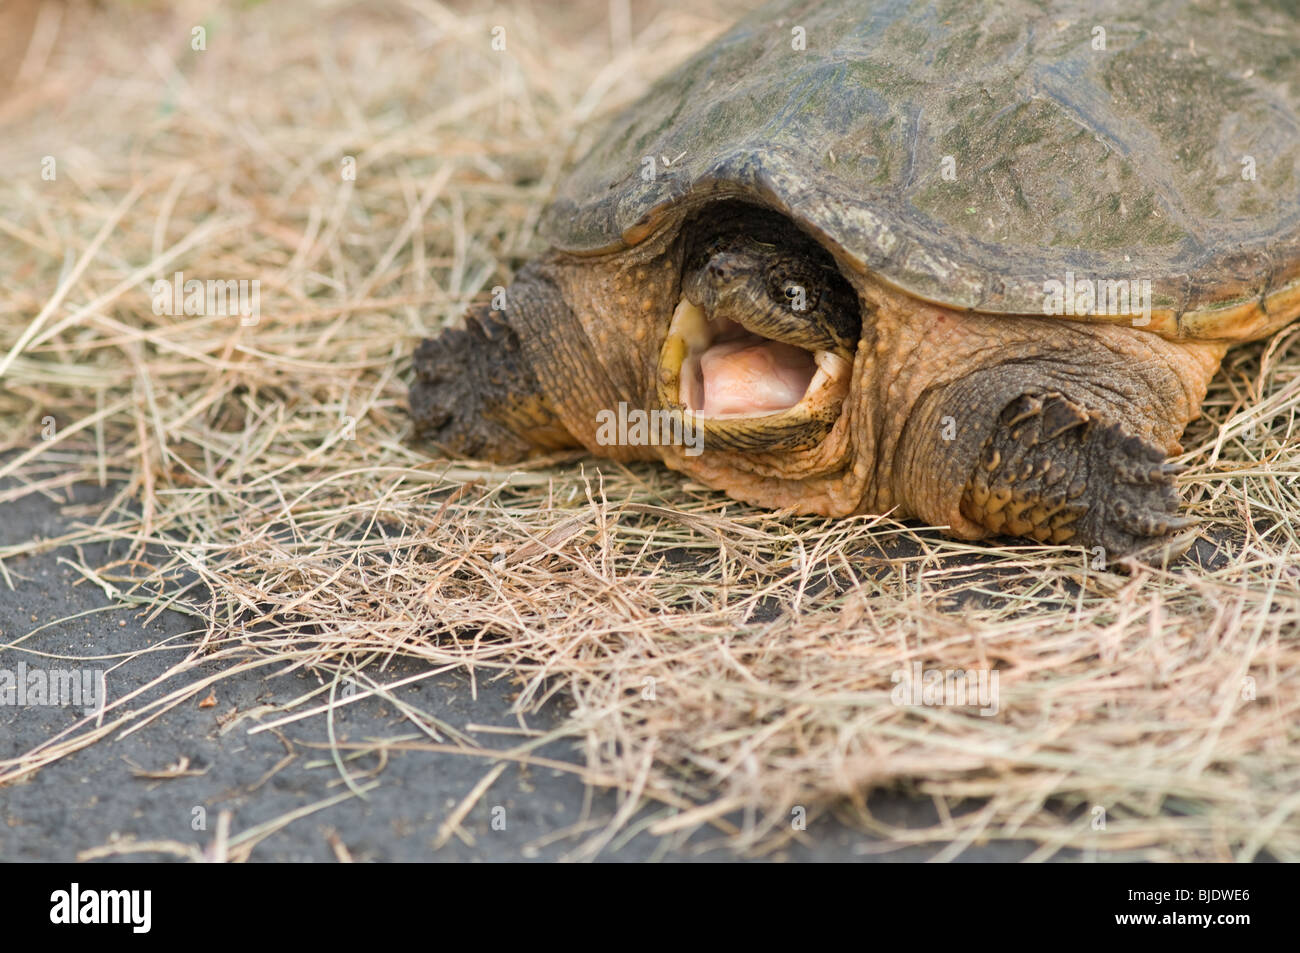 open mouthed snapper on dried grass - Stock Image